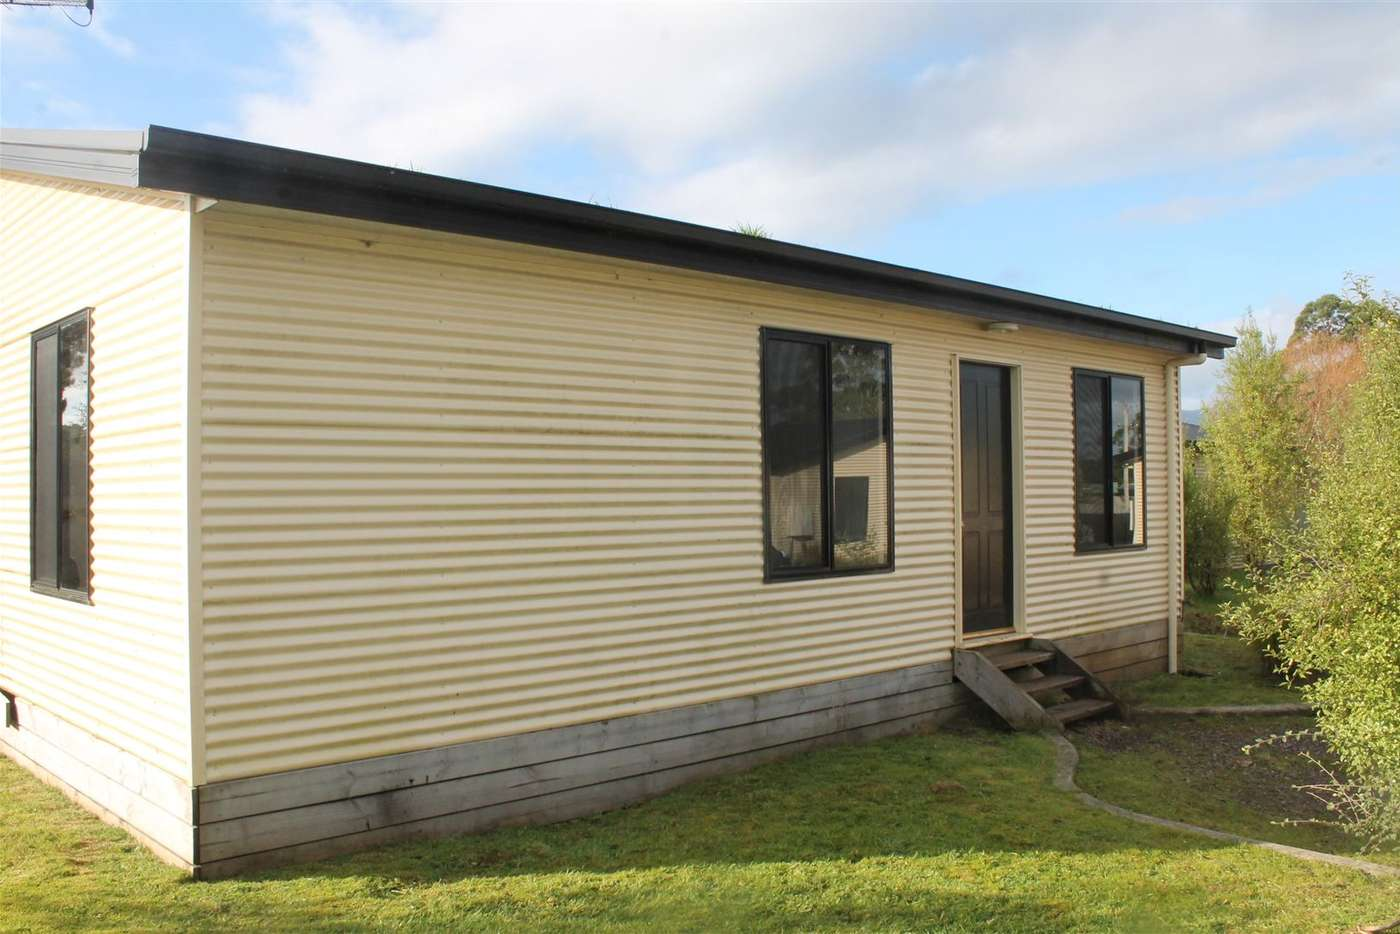 Main view of Homely unit listing, 1/15 Gellibrand St, Zeehan TAS 7469